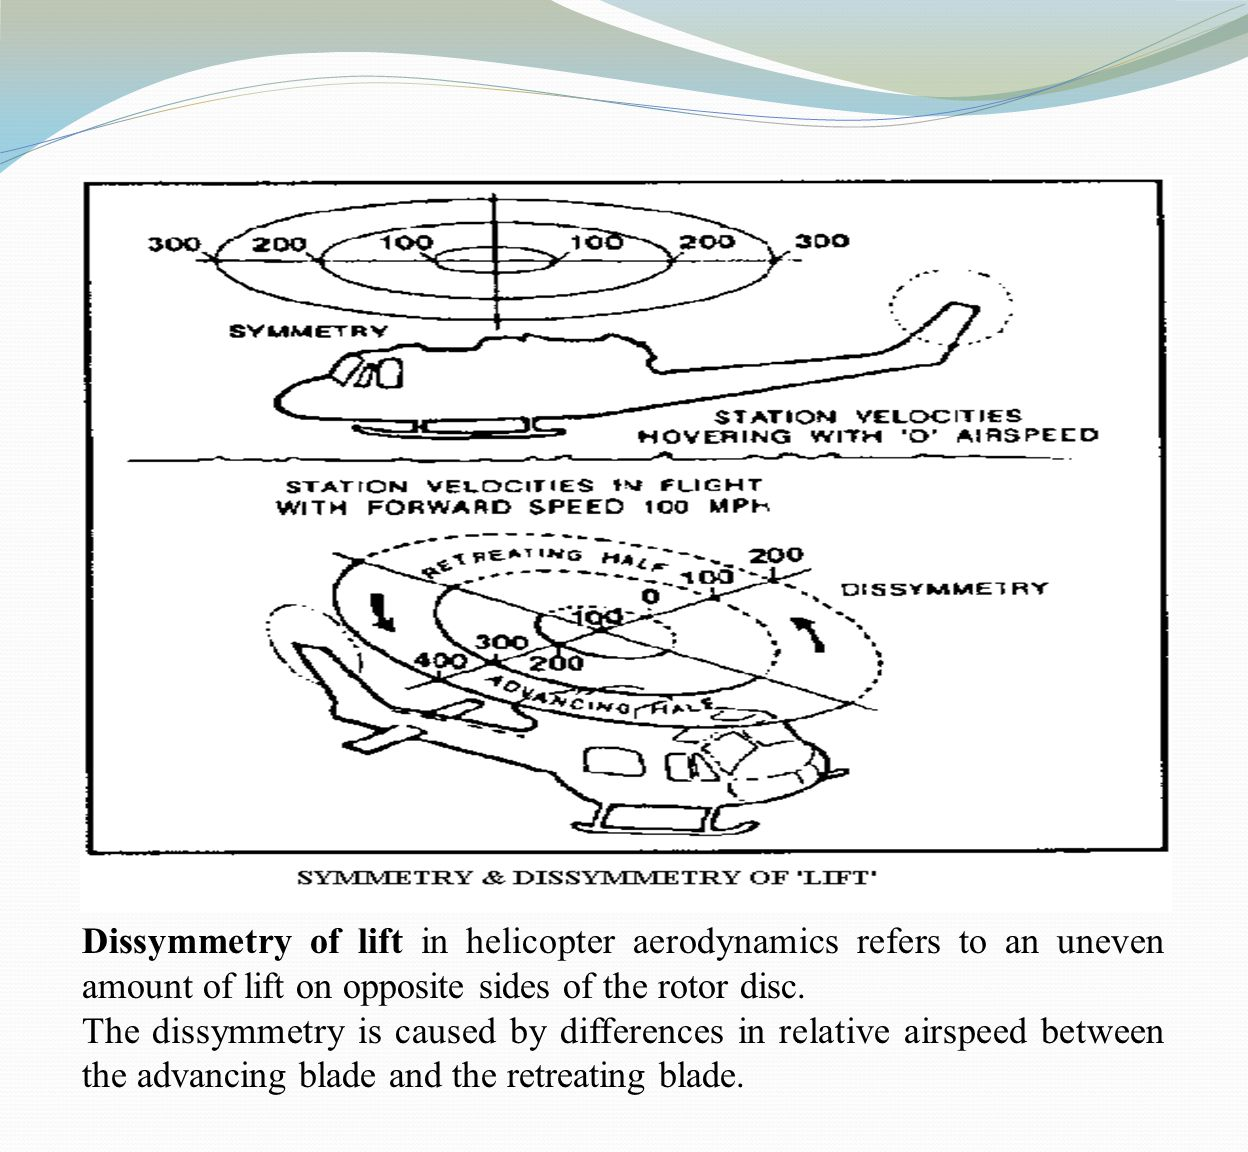 Dissymmetry of lift in helicopter aerodynamics refers to an uneven amount of lift on opposite sides of the rotor disc.